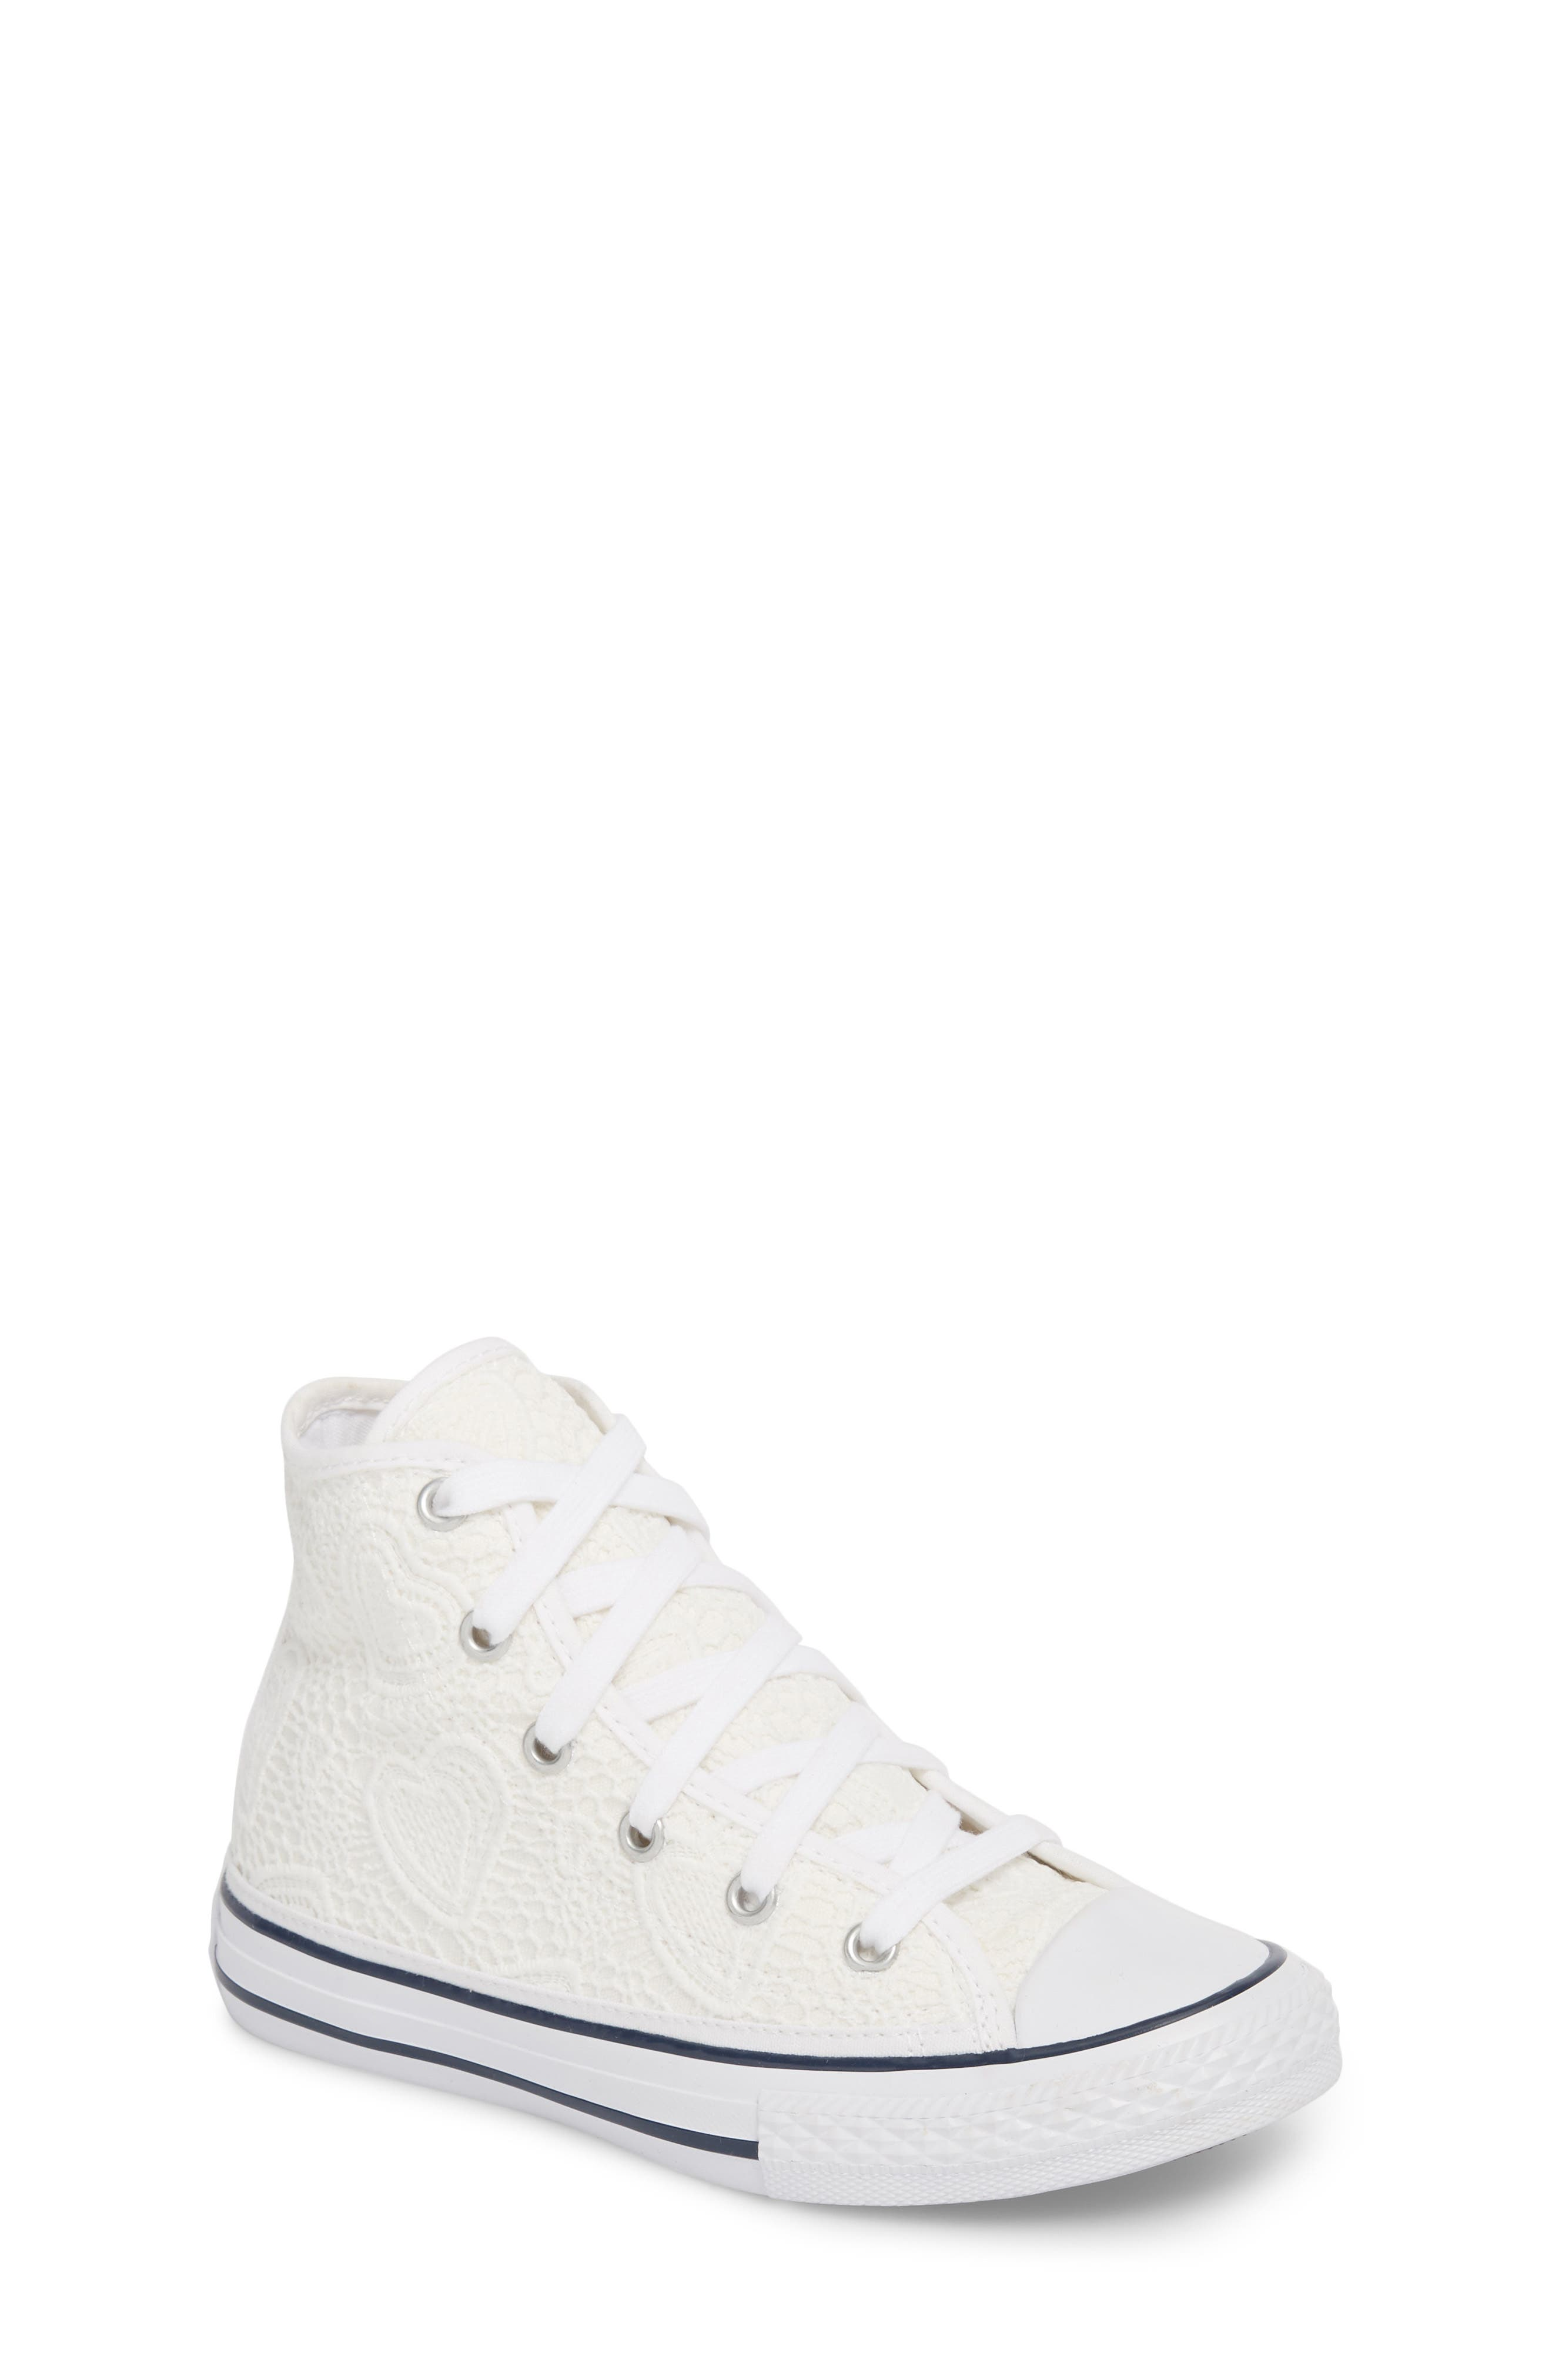 Chuck Taylor<sup>®</sup> All Star<sup>®</sup> Crochet High Top Sneaker,                             Main thumbnail 1, color,                             White